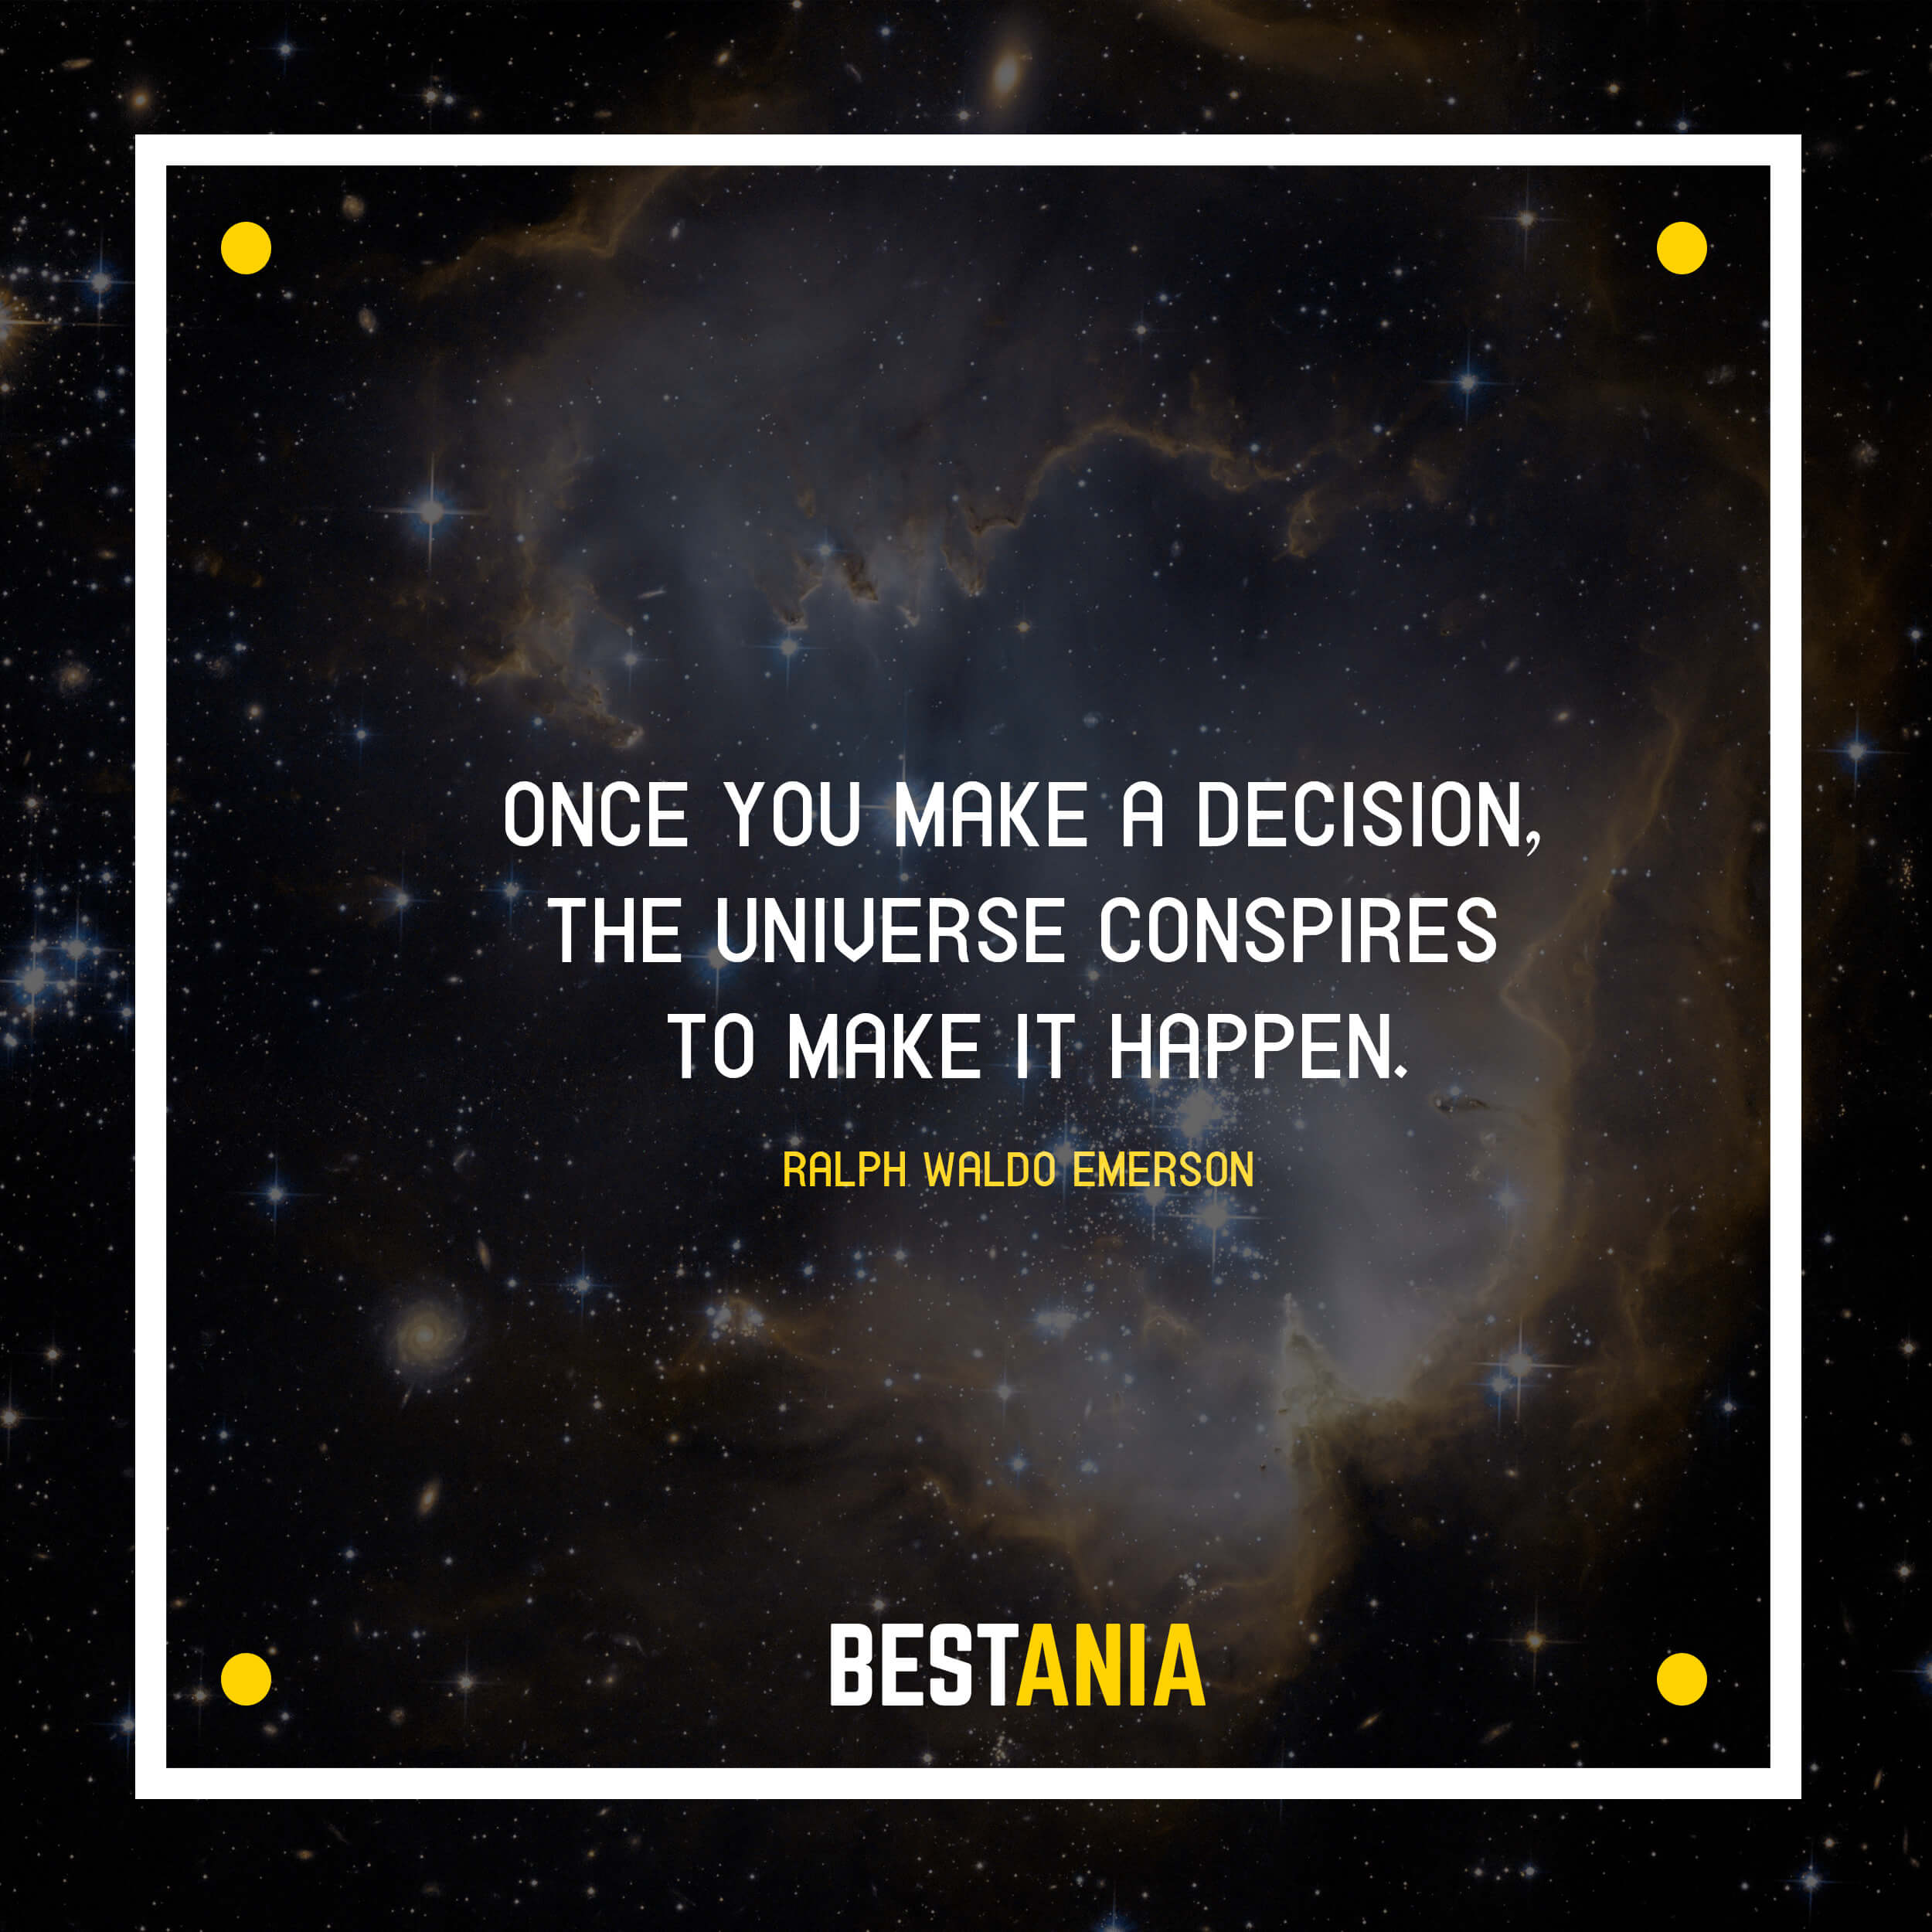 """ONCE YOU MAKE A DECISION, THE UNIVERSE CONSPIRES TO MAKE IT HAPPEN."" RALPH WALDO EMERSON"